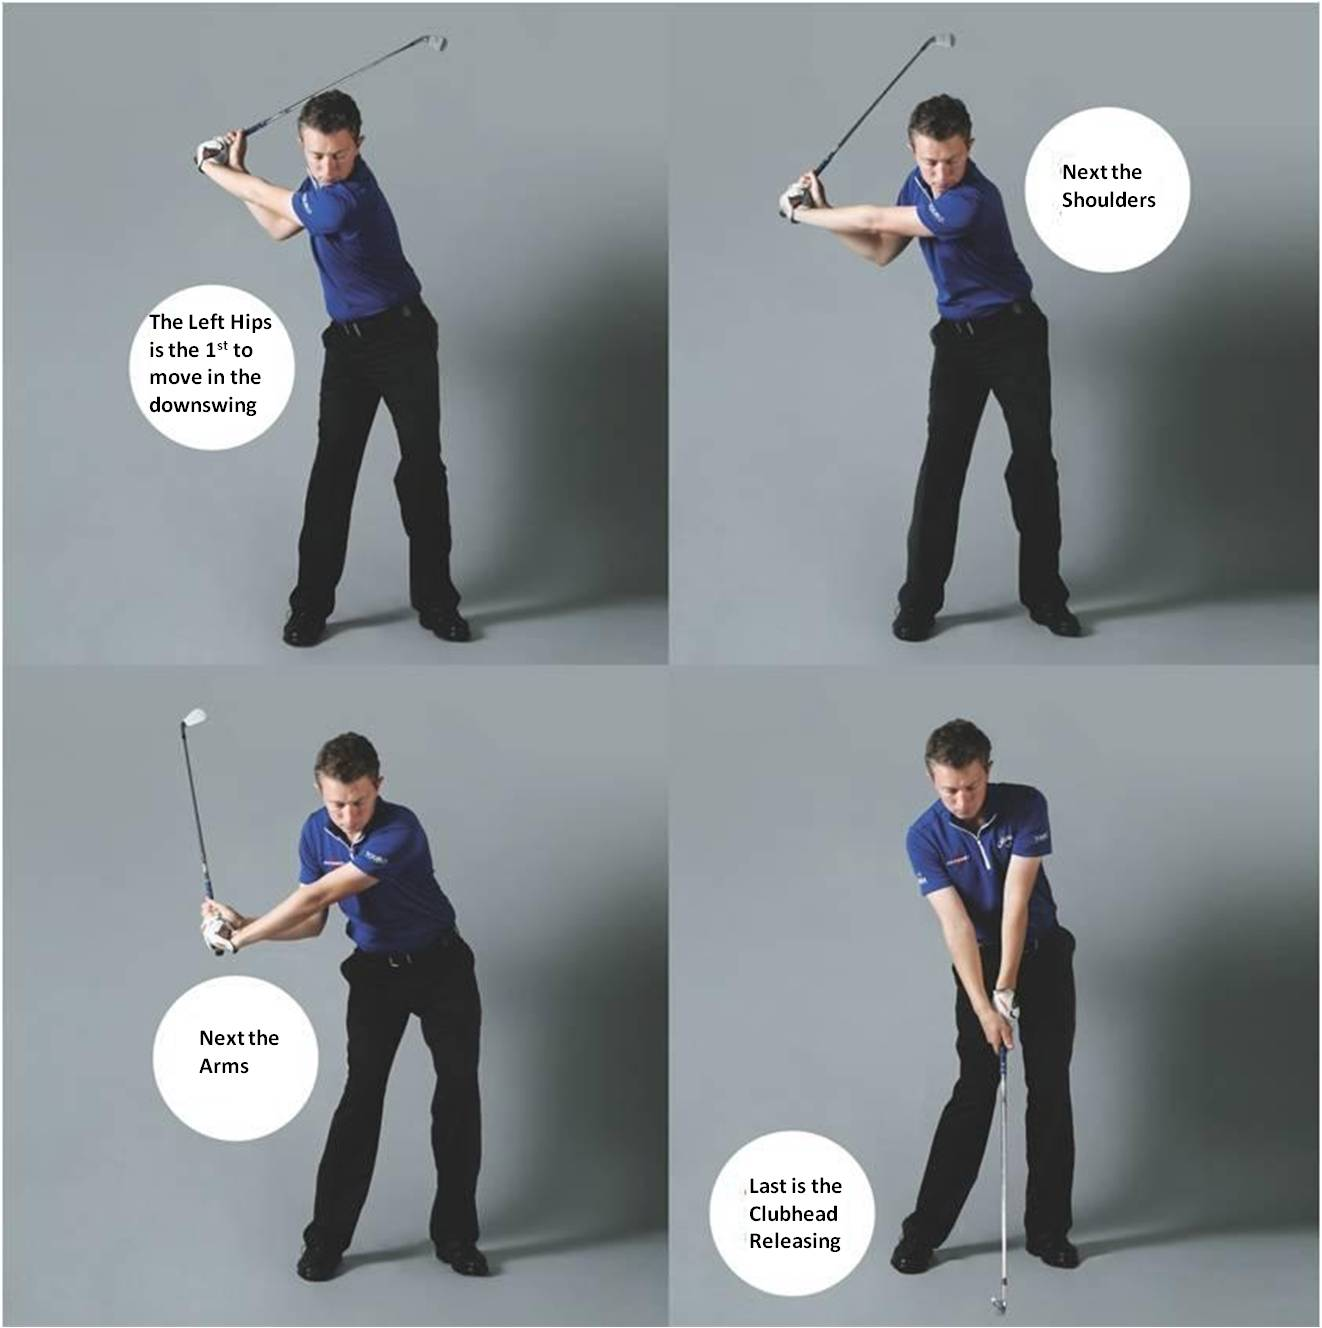 how to turn hips in downswing